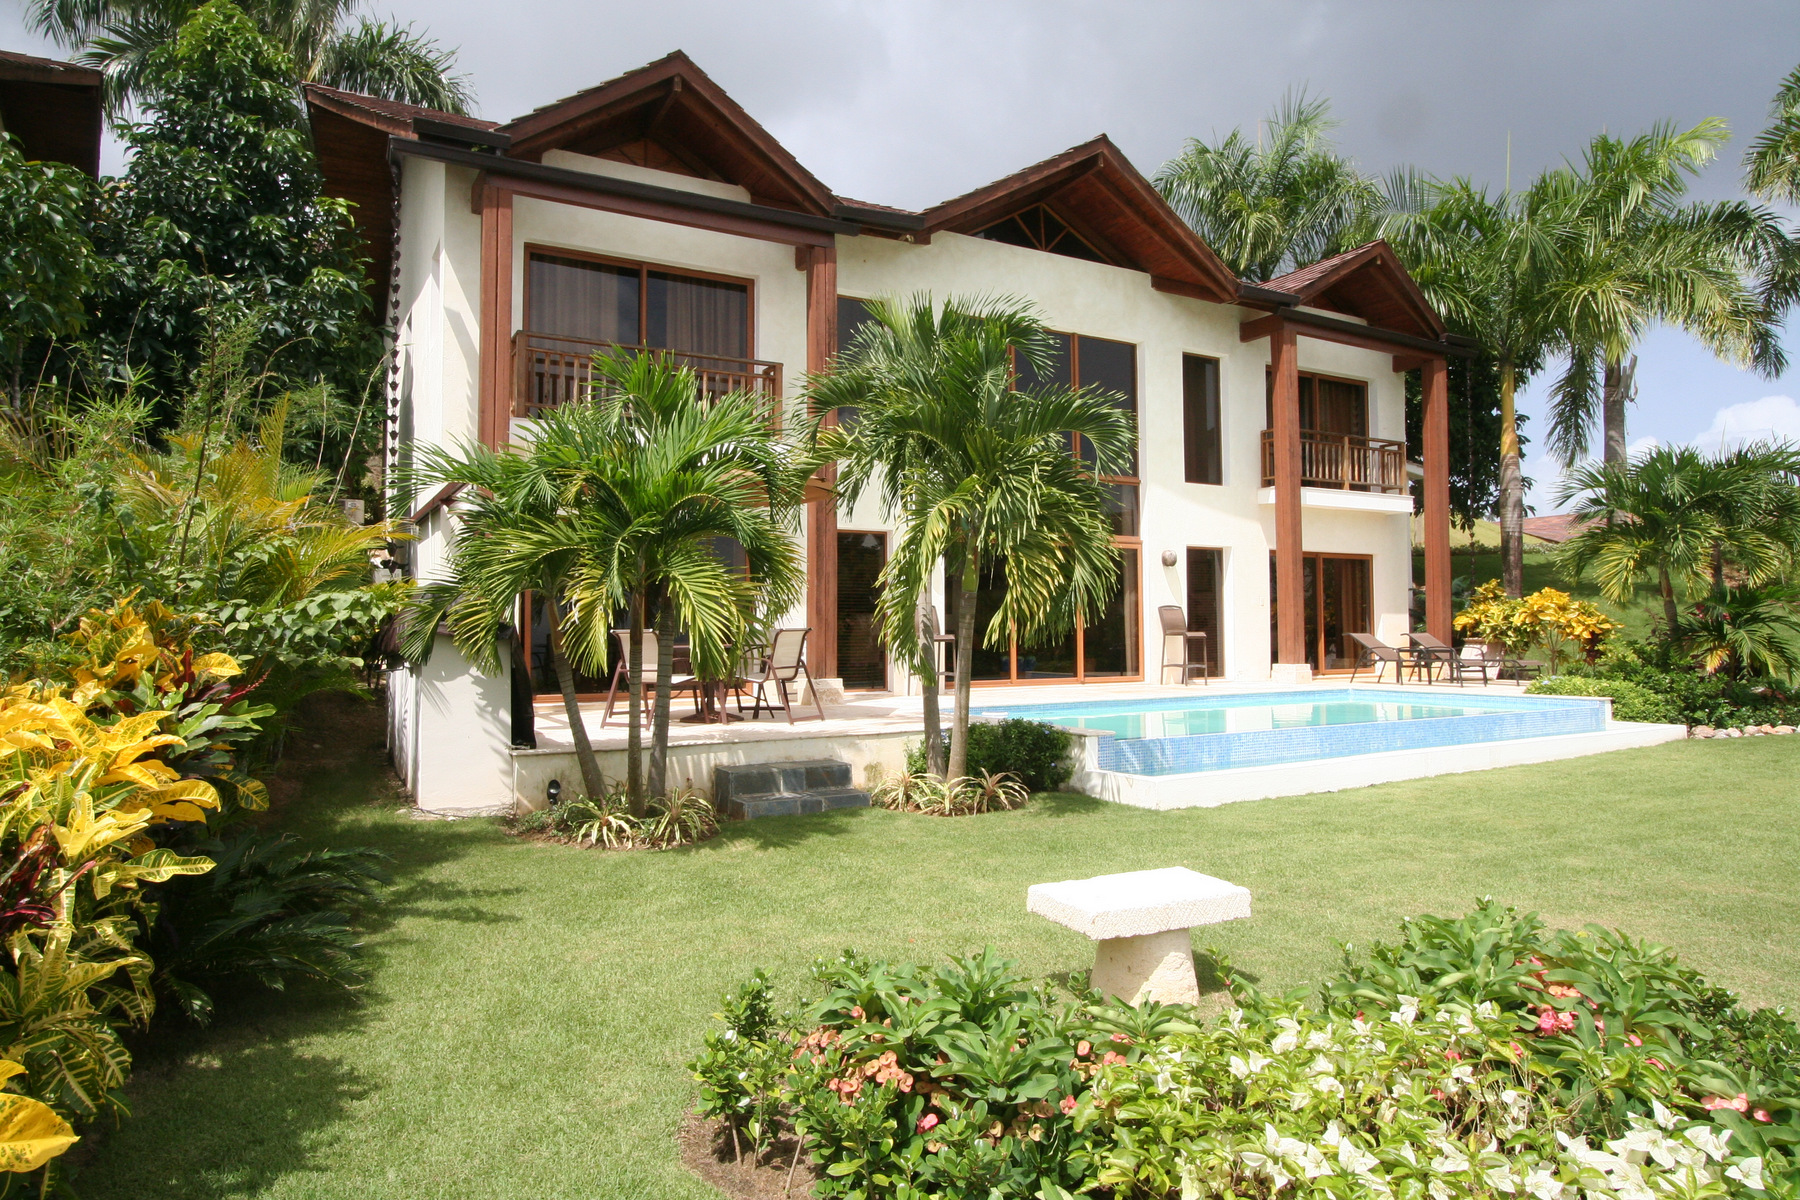 Property For Sale at Puerto Bahia Villa 36